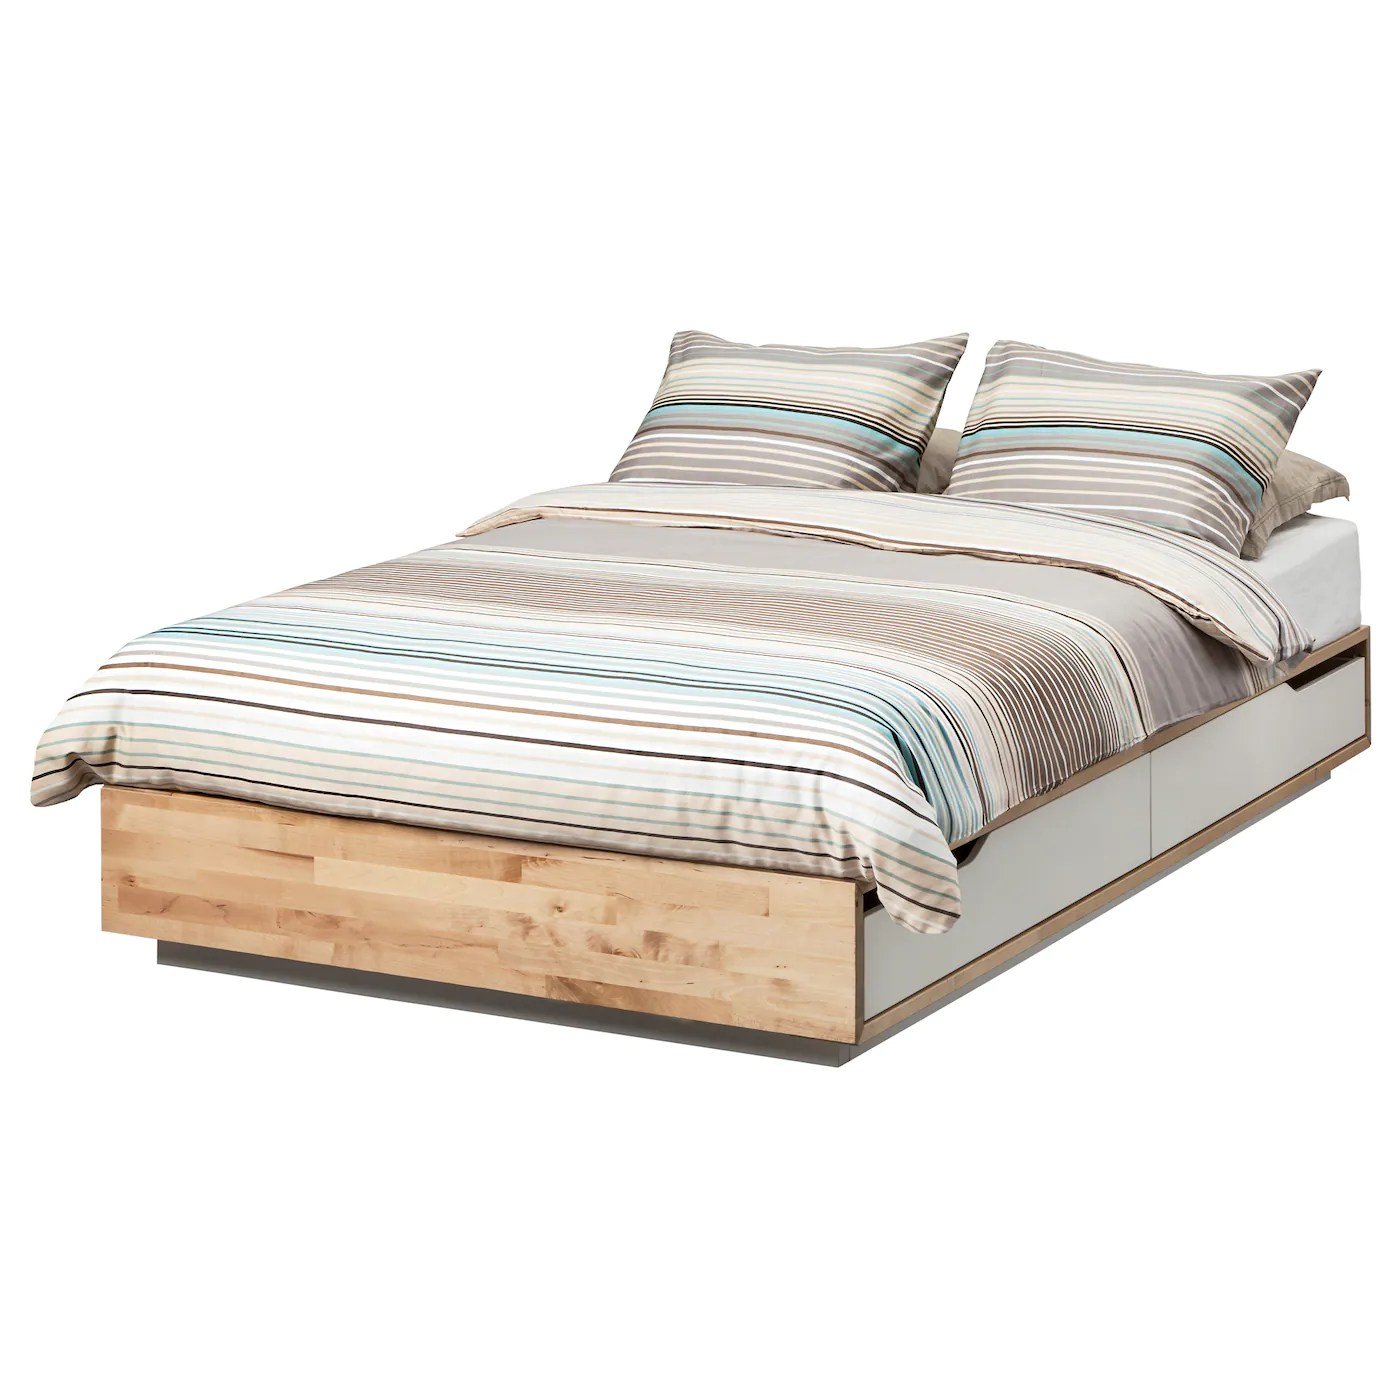 Ikea Mandal Frame Mandal Bed Frame With Storage Birch White